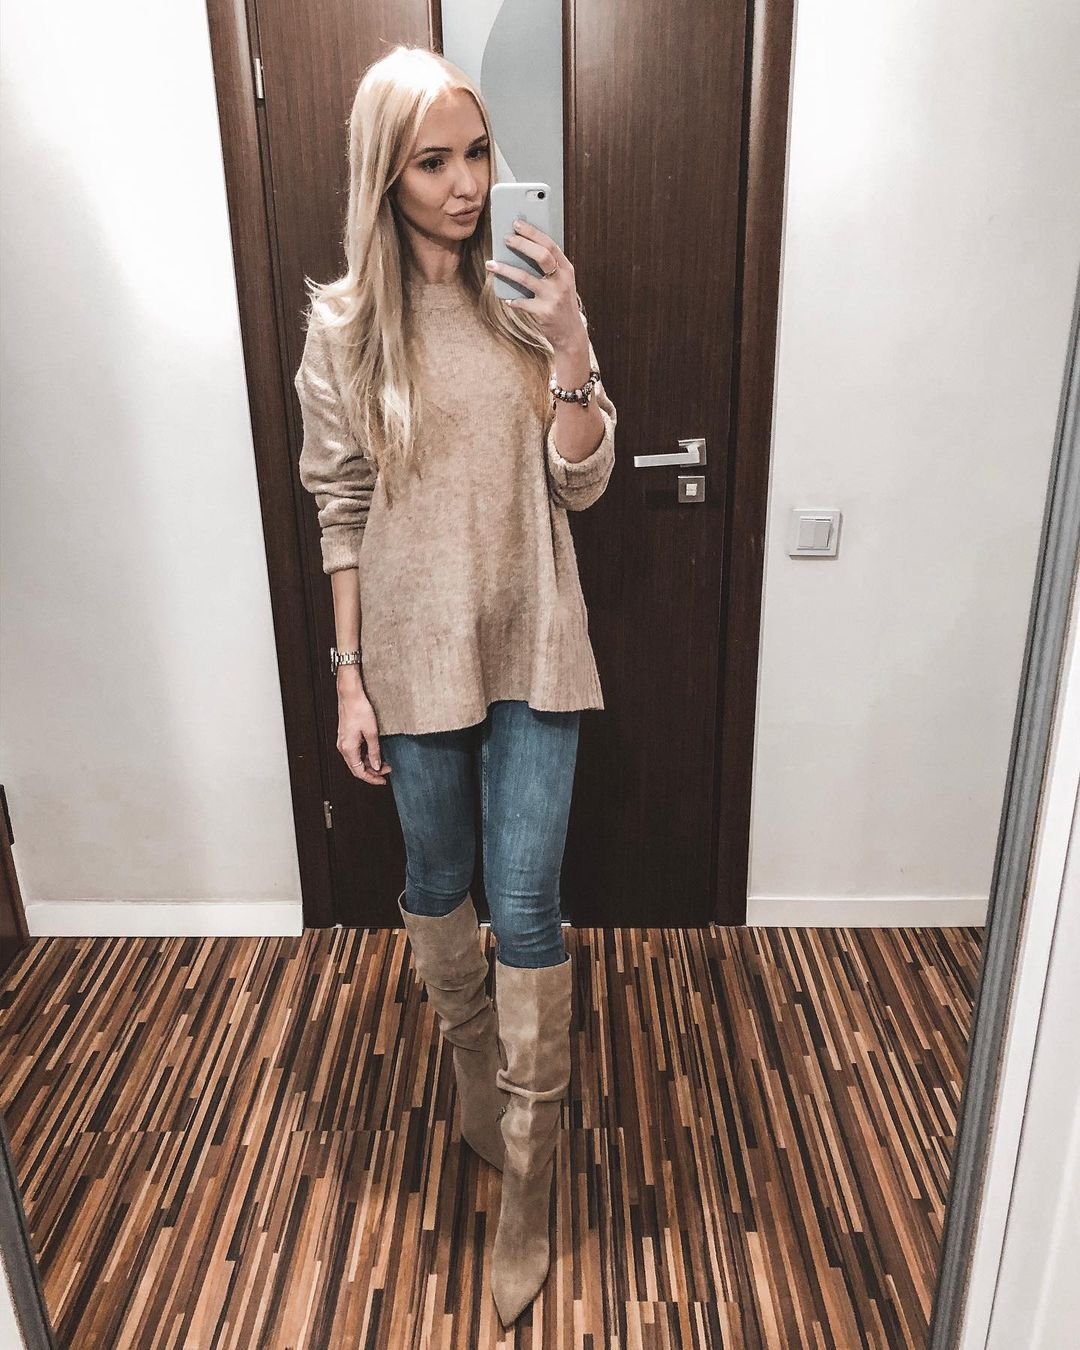 """Marta on Instagram: """"#instagirl #instadaily #instafashion #instastyle #fashion #fashionstyle #style #mystyle #outfit #outfitoftheday #ootd #look #lookoftheday…"""""""